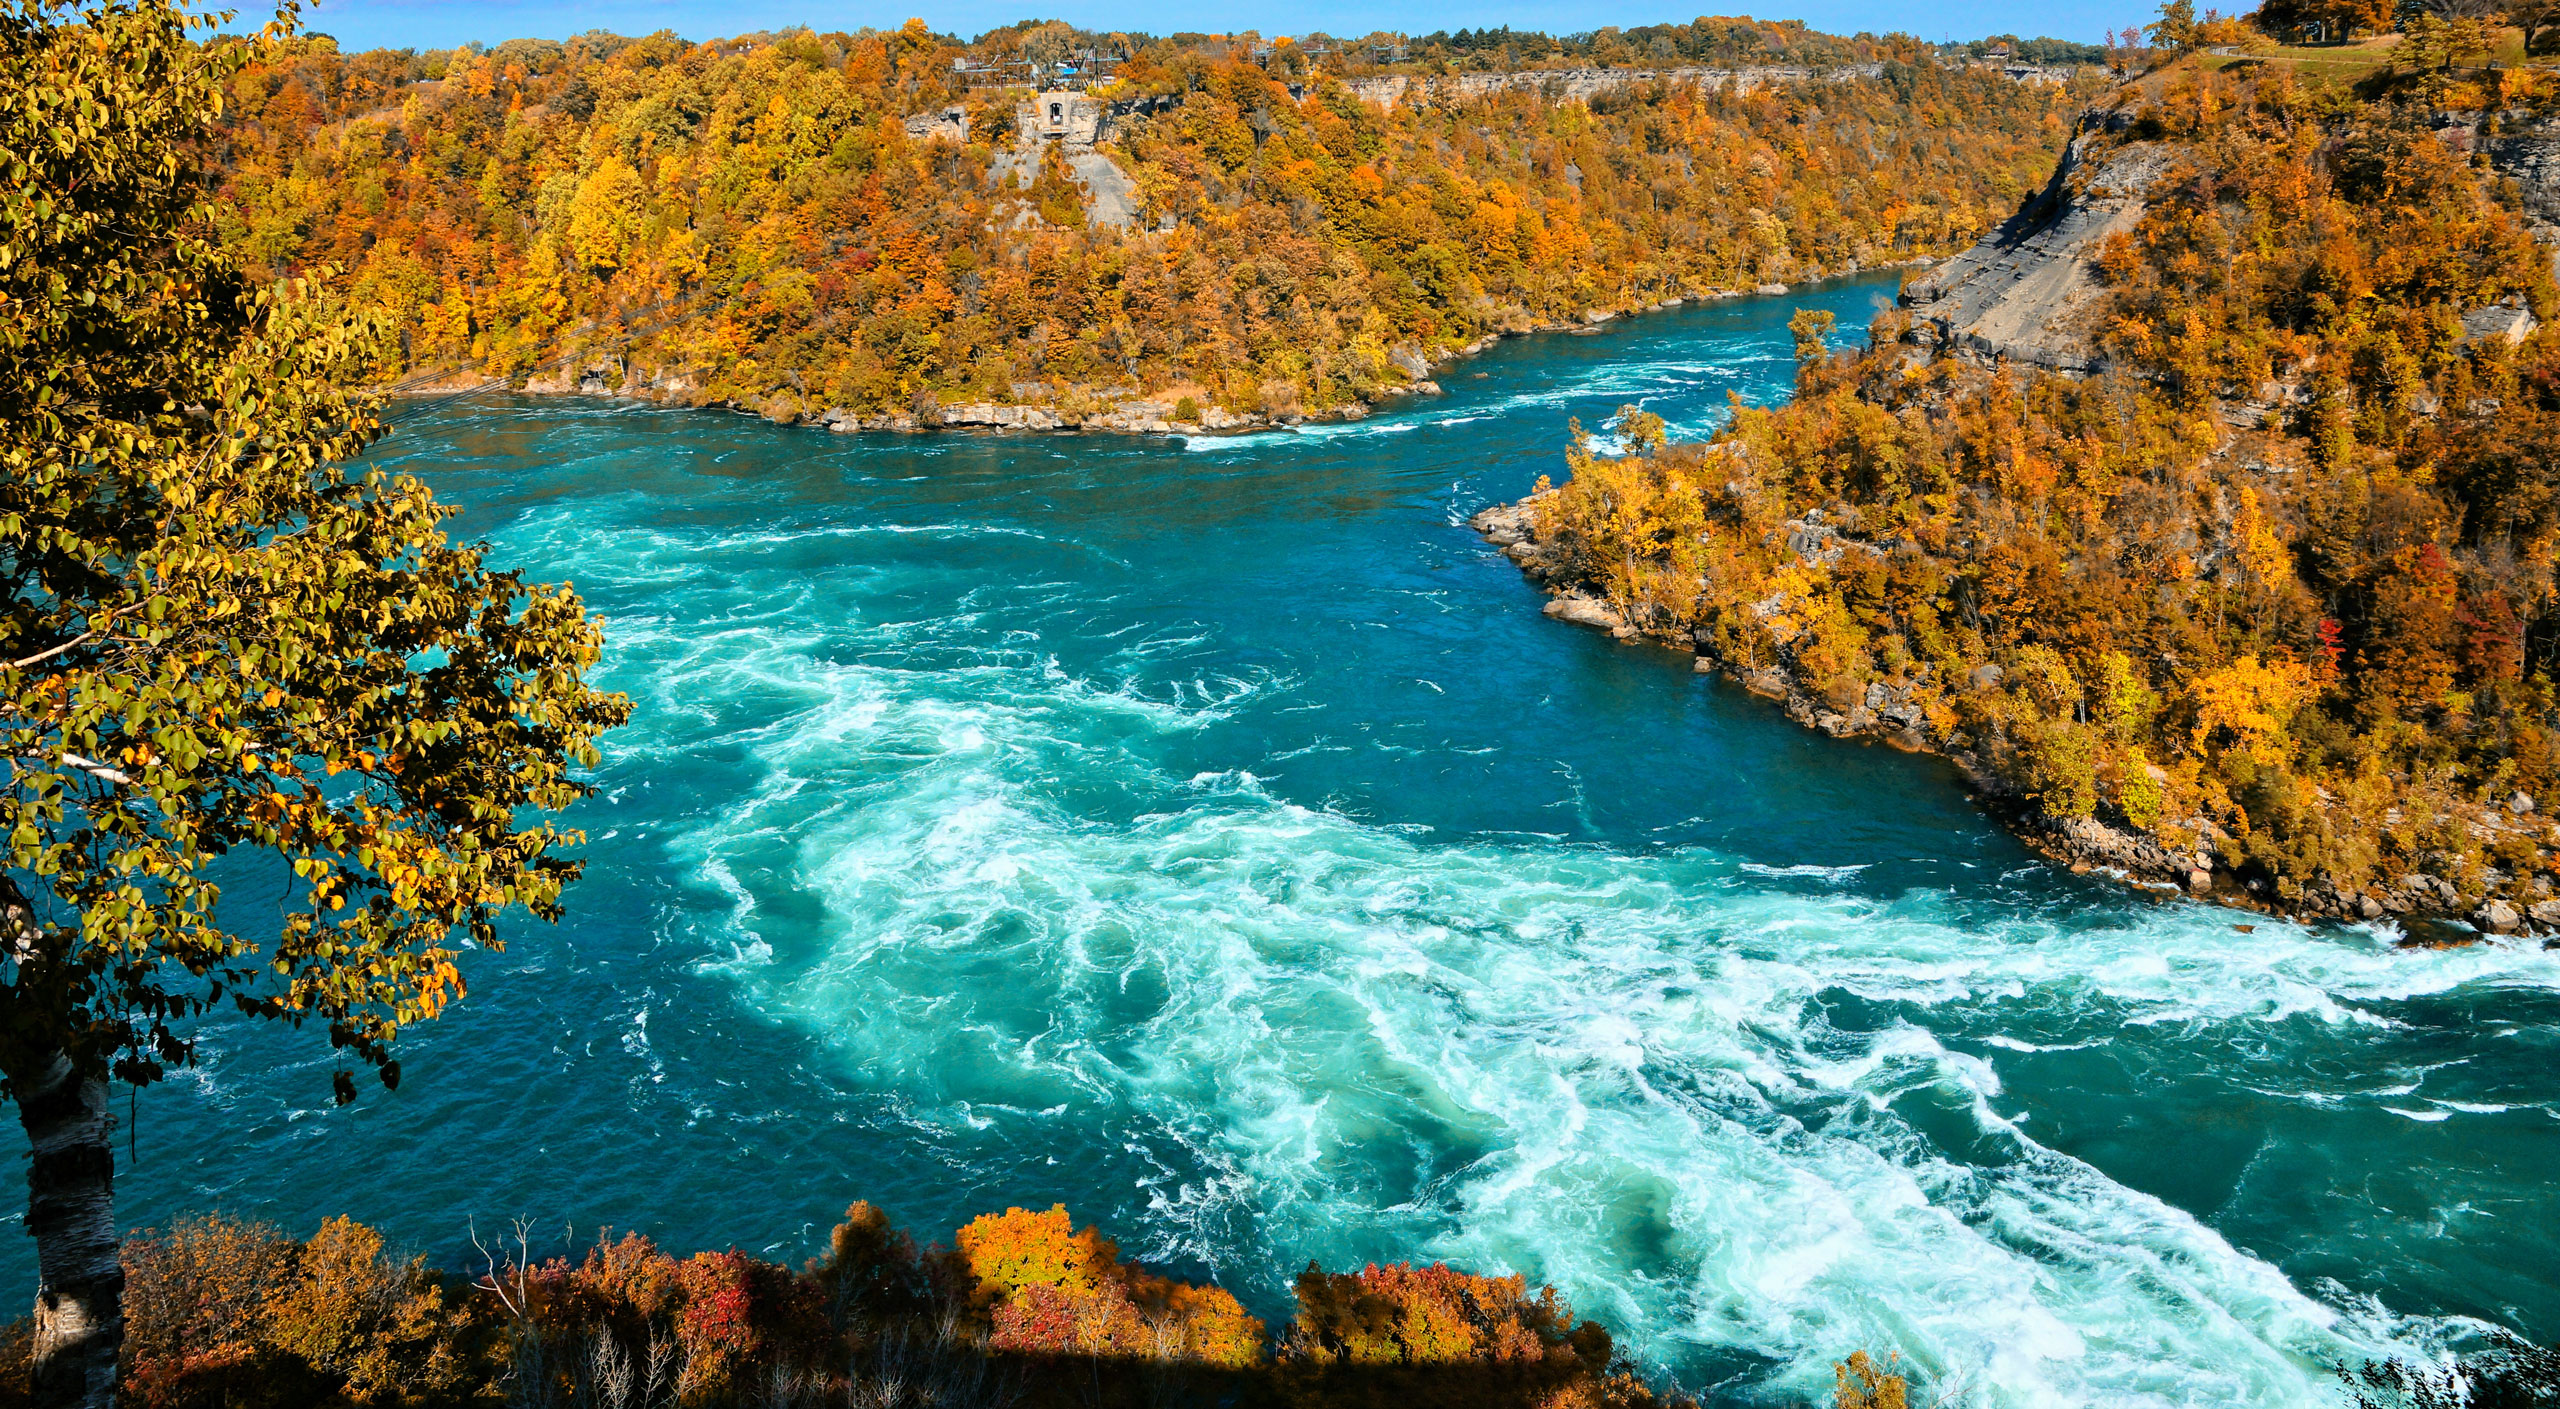 Niagara Gorge in the fall